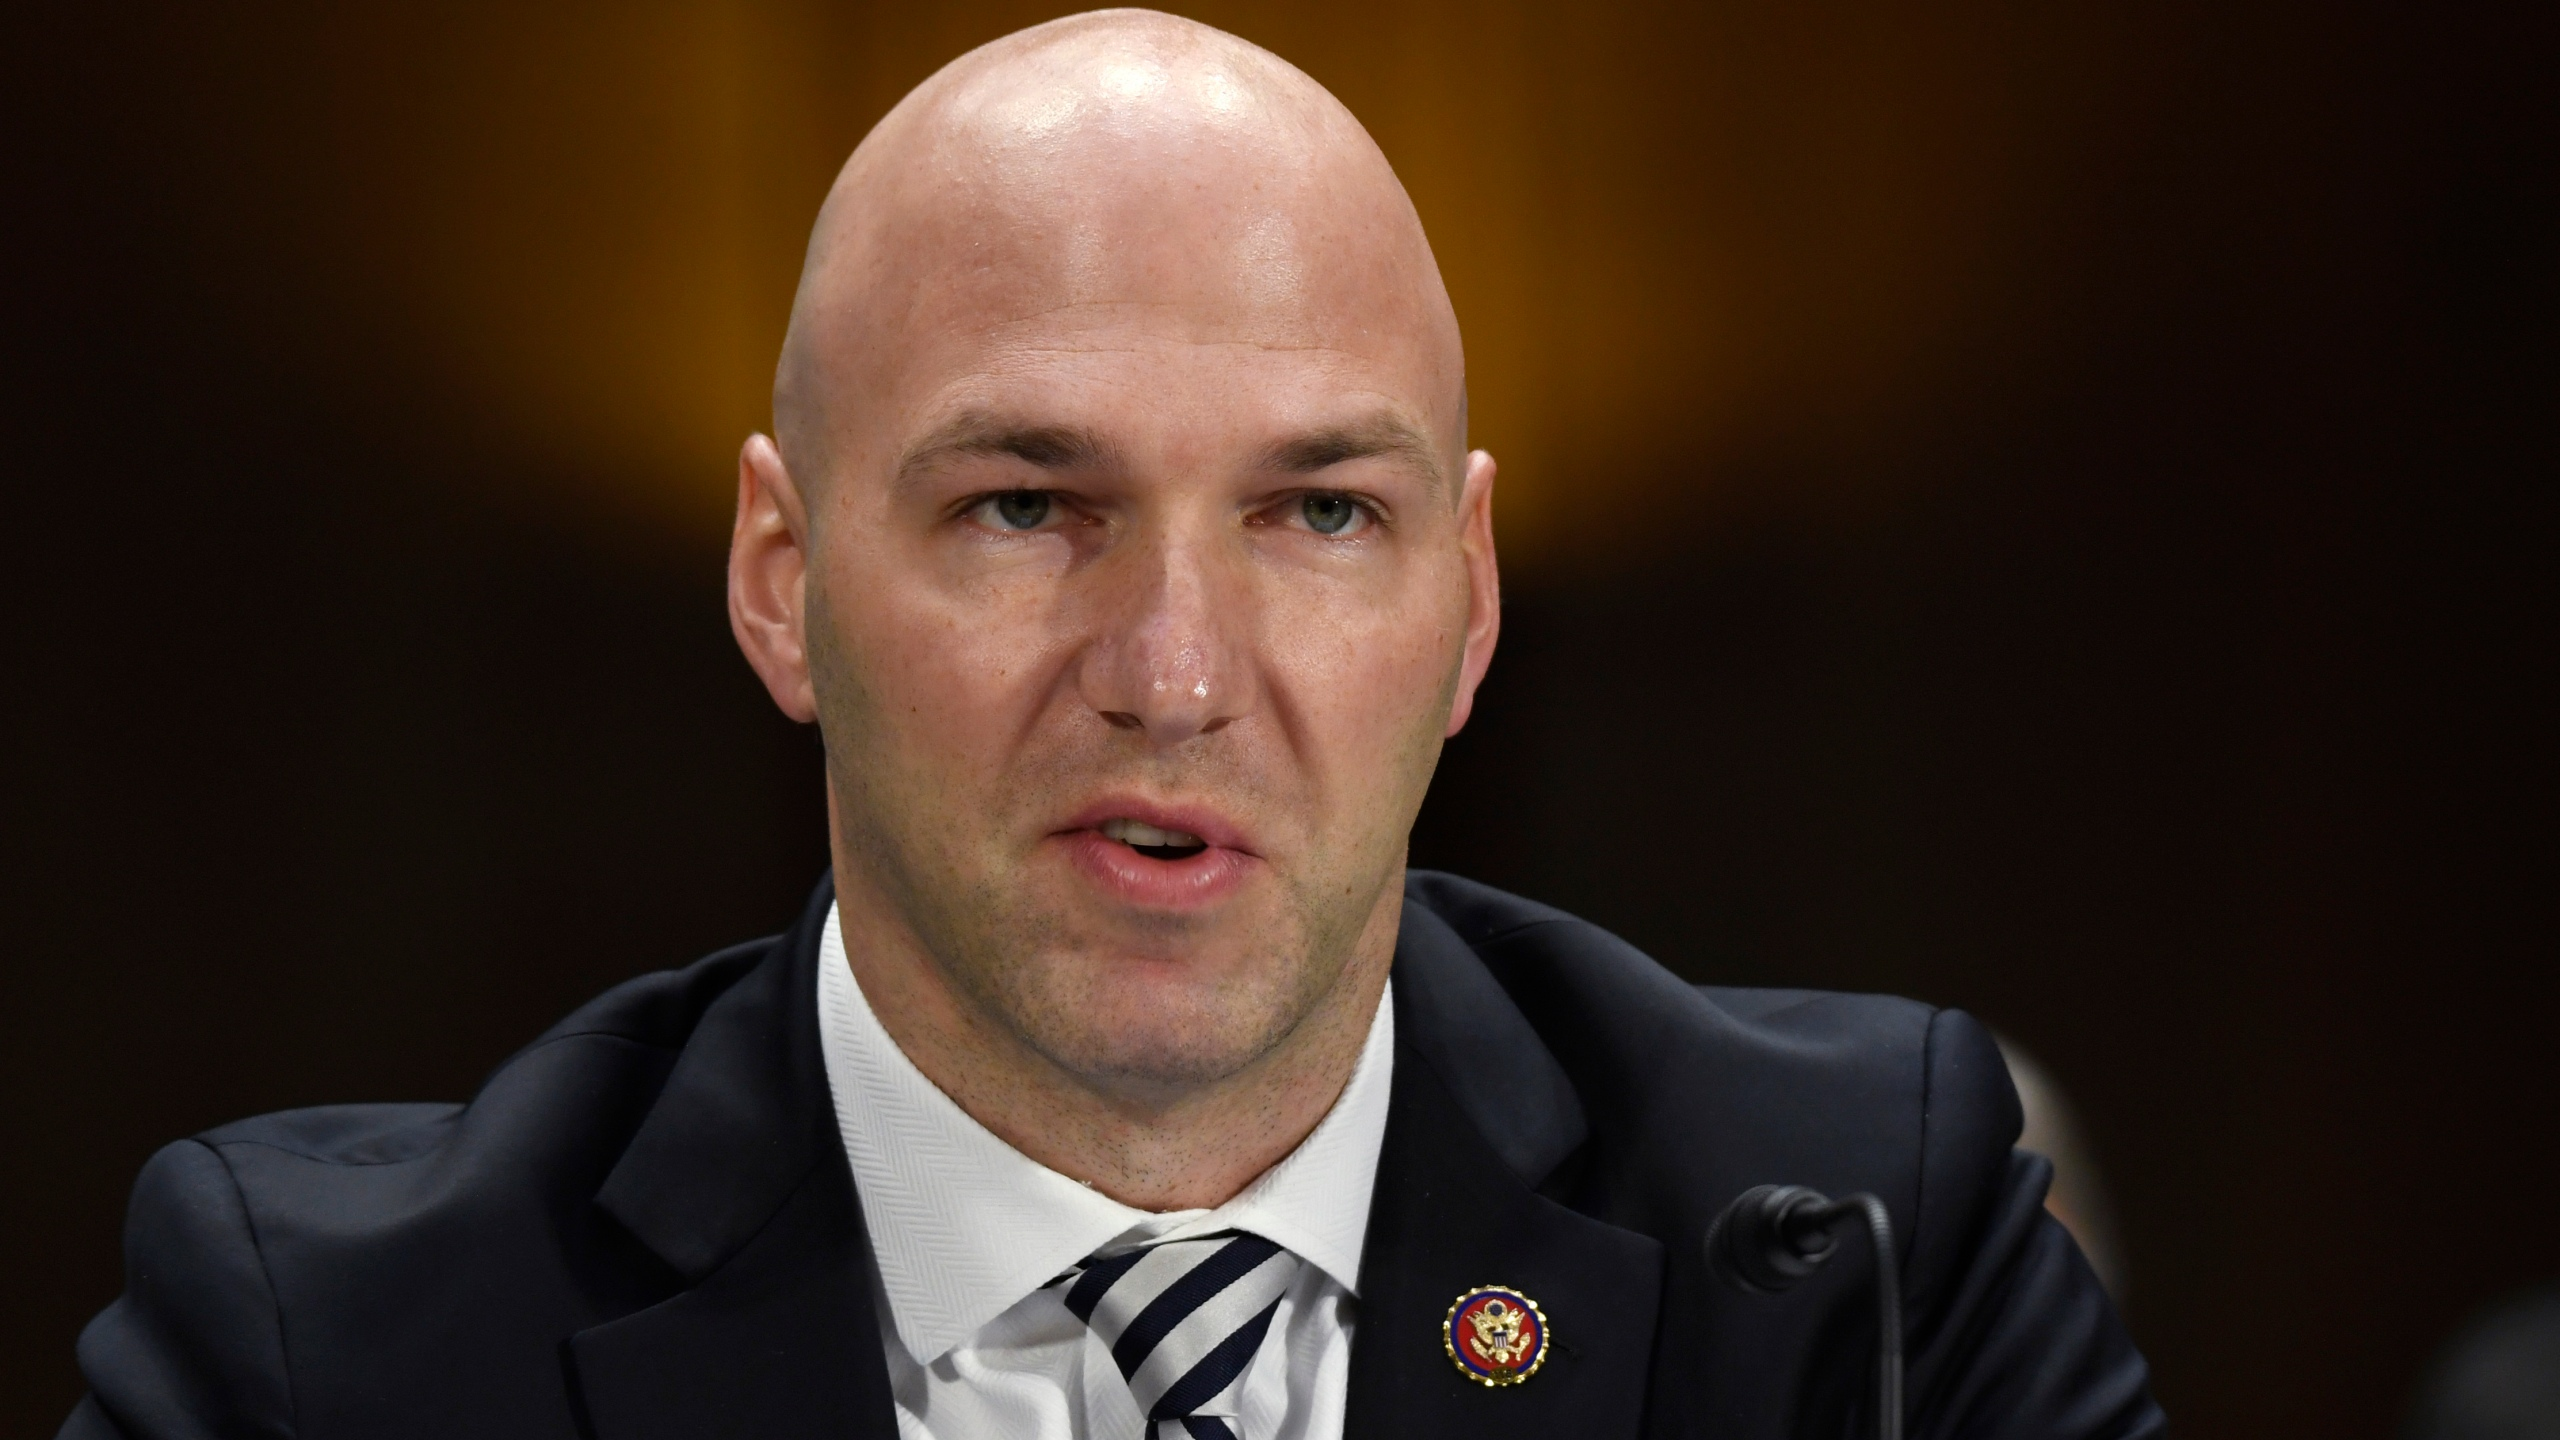 In this Feb. 11, 2020, file photo, Rep. Anthony Gonzalez, R-Ohio, speaks during a Senate Commerce subcommittee hearing on Capitol Hill in Washington, on intercollegiate athlete compensation. (AP Photo/Susan Walsh, File)